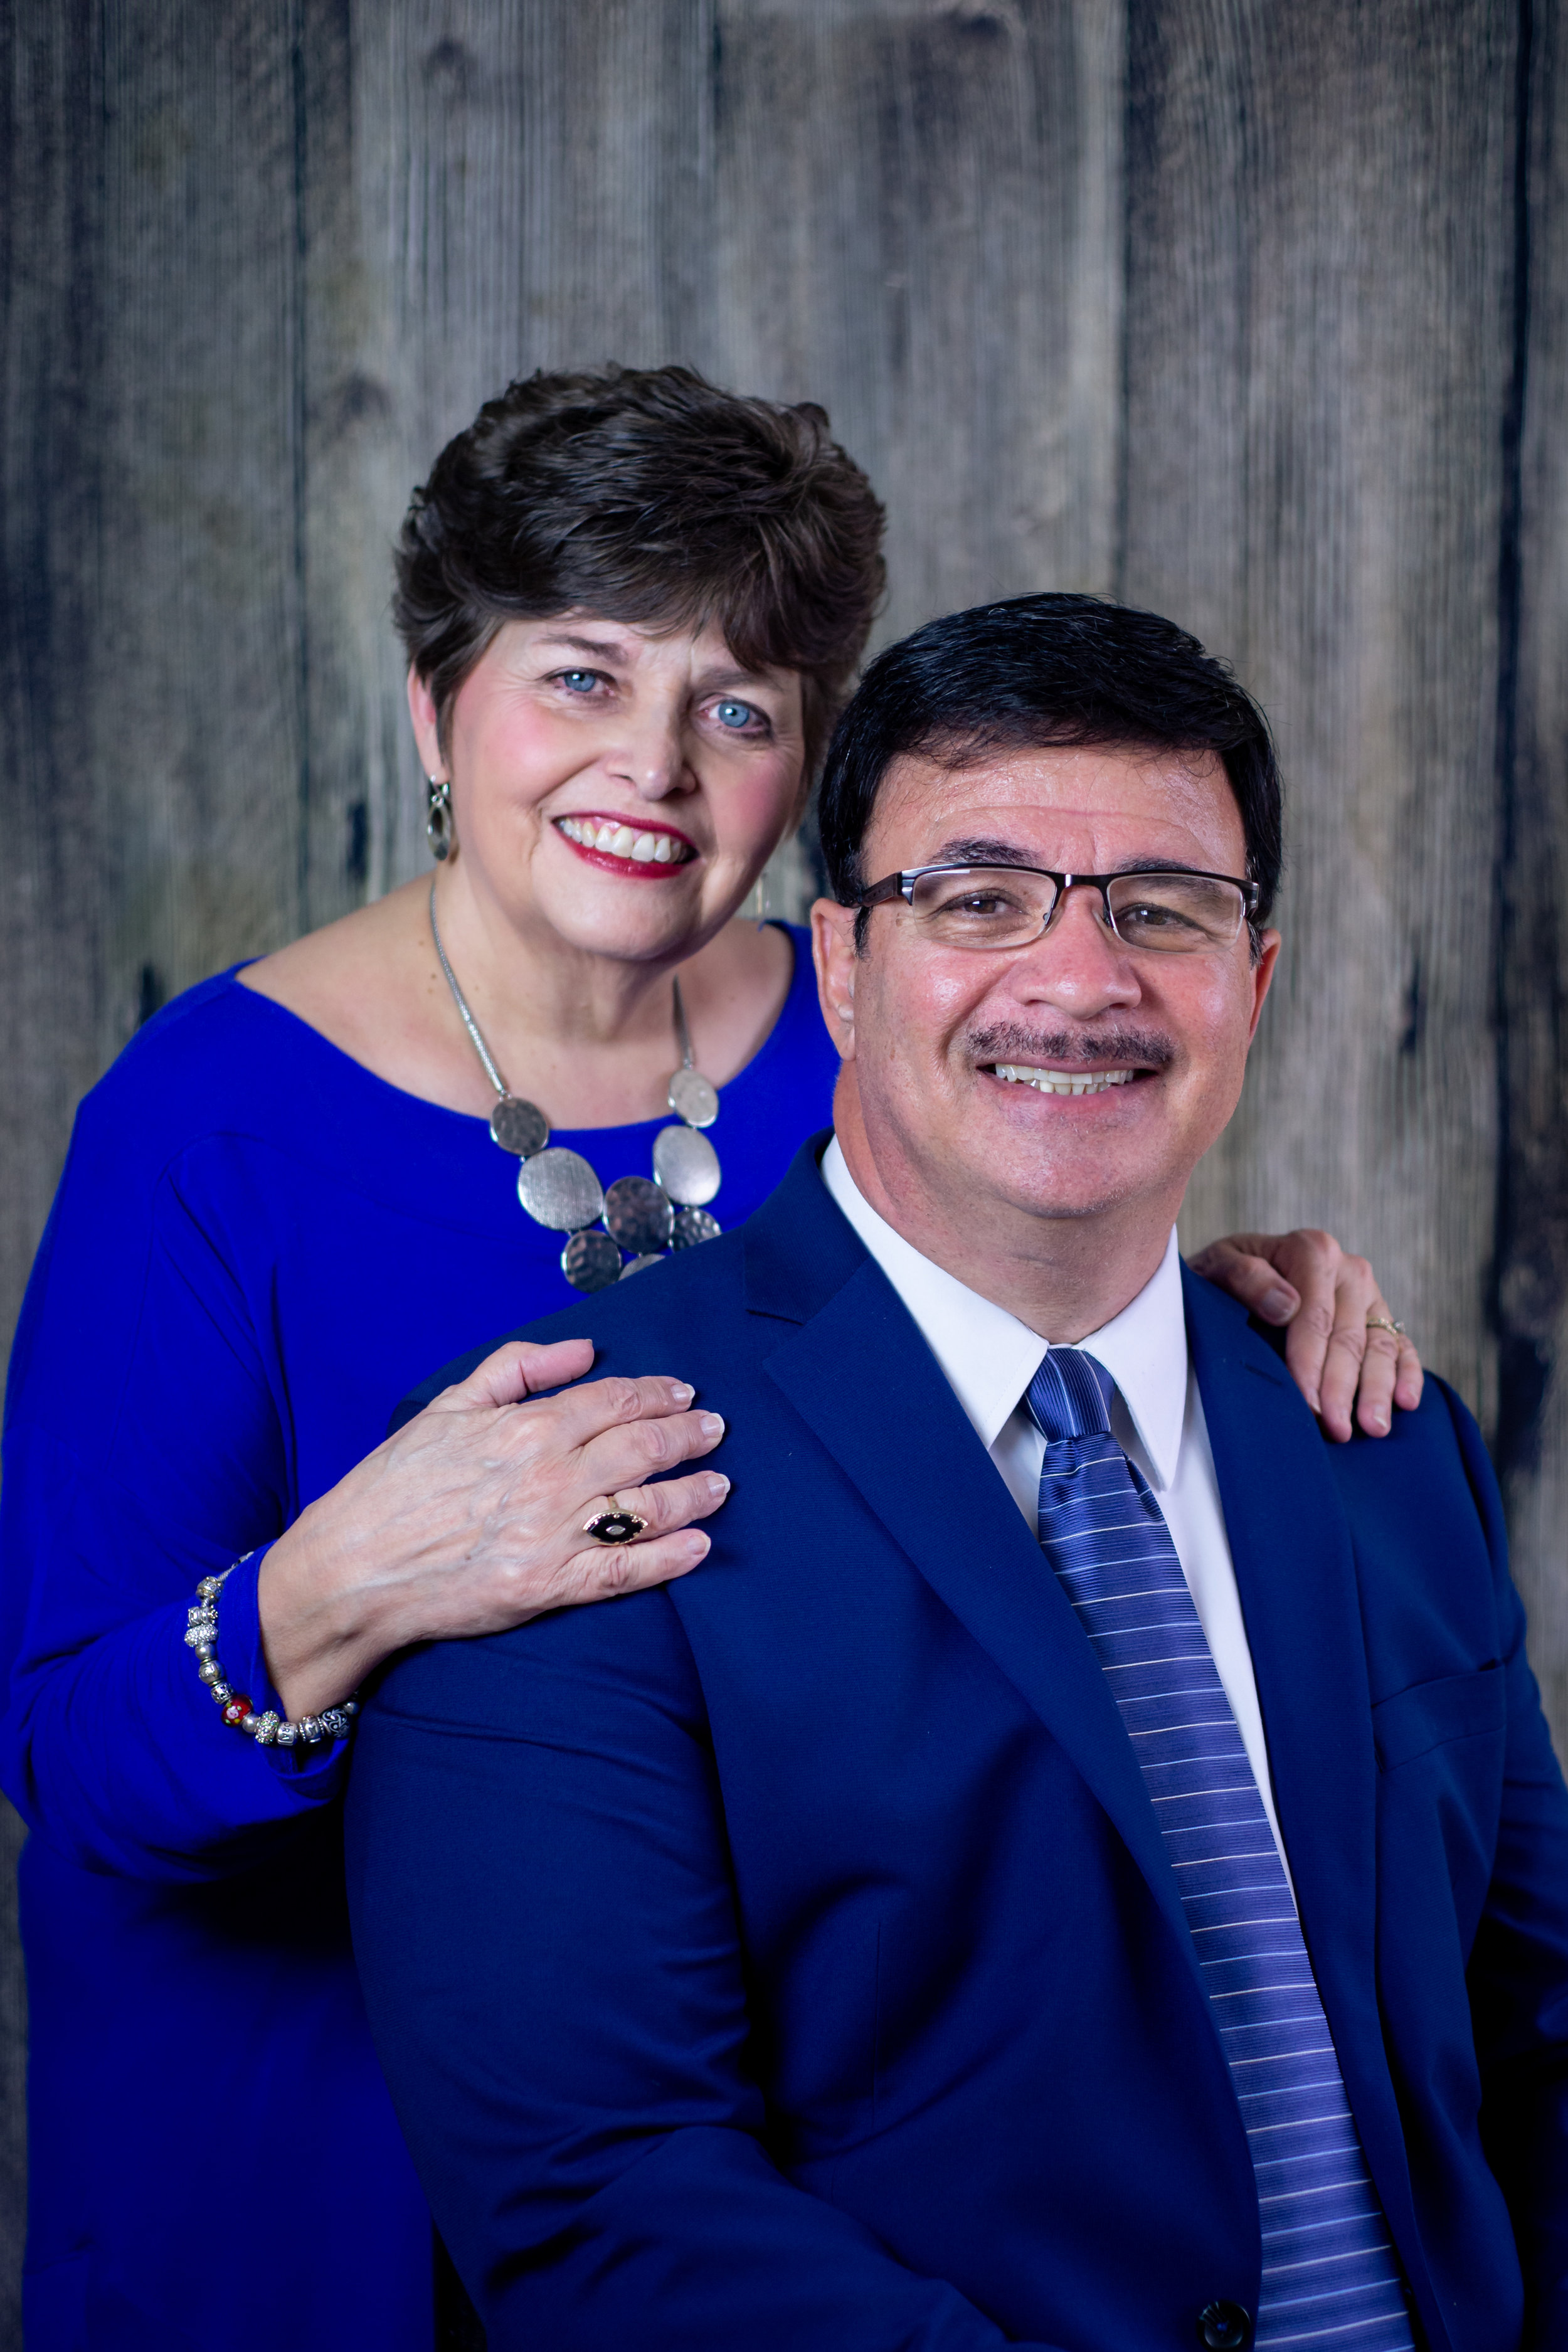 Lead Pastor    Dr. John & Janice Pelonero  New Covenant Church was founded in 1985 under the leadership of Dr. John Pelonero. The Lord led him from West Islip, NY to Gastonia to begin a work where the life-changing presence of God changes and transforms a city. His vision also includes the building of a Bible college, and planting churches locally, and abroad.  Pastor John graduated from Lee College in 1979 with a Bachelor of Arts degree. He obtained his Masters of Divinity in Biblical and Pastoral Studies in 1983 from School of Theology in Cleveland, Tn. In 2010, he received his Doctor of Philosophy in Leadership, Communication, and Administration from Louisiana Baptist University.  Pastor John and Janice Pelonero, serve together as the Senior Pastors of New Covenant Church.